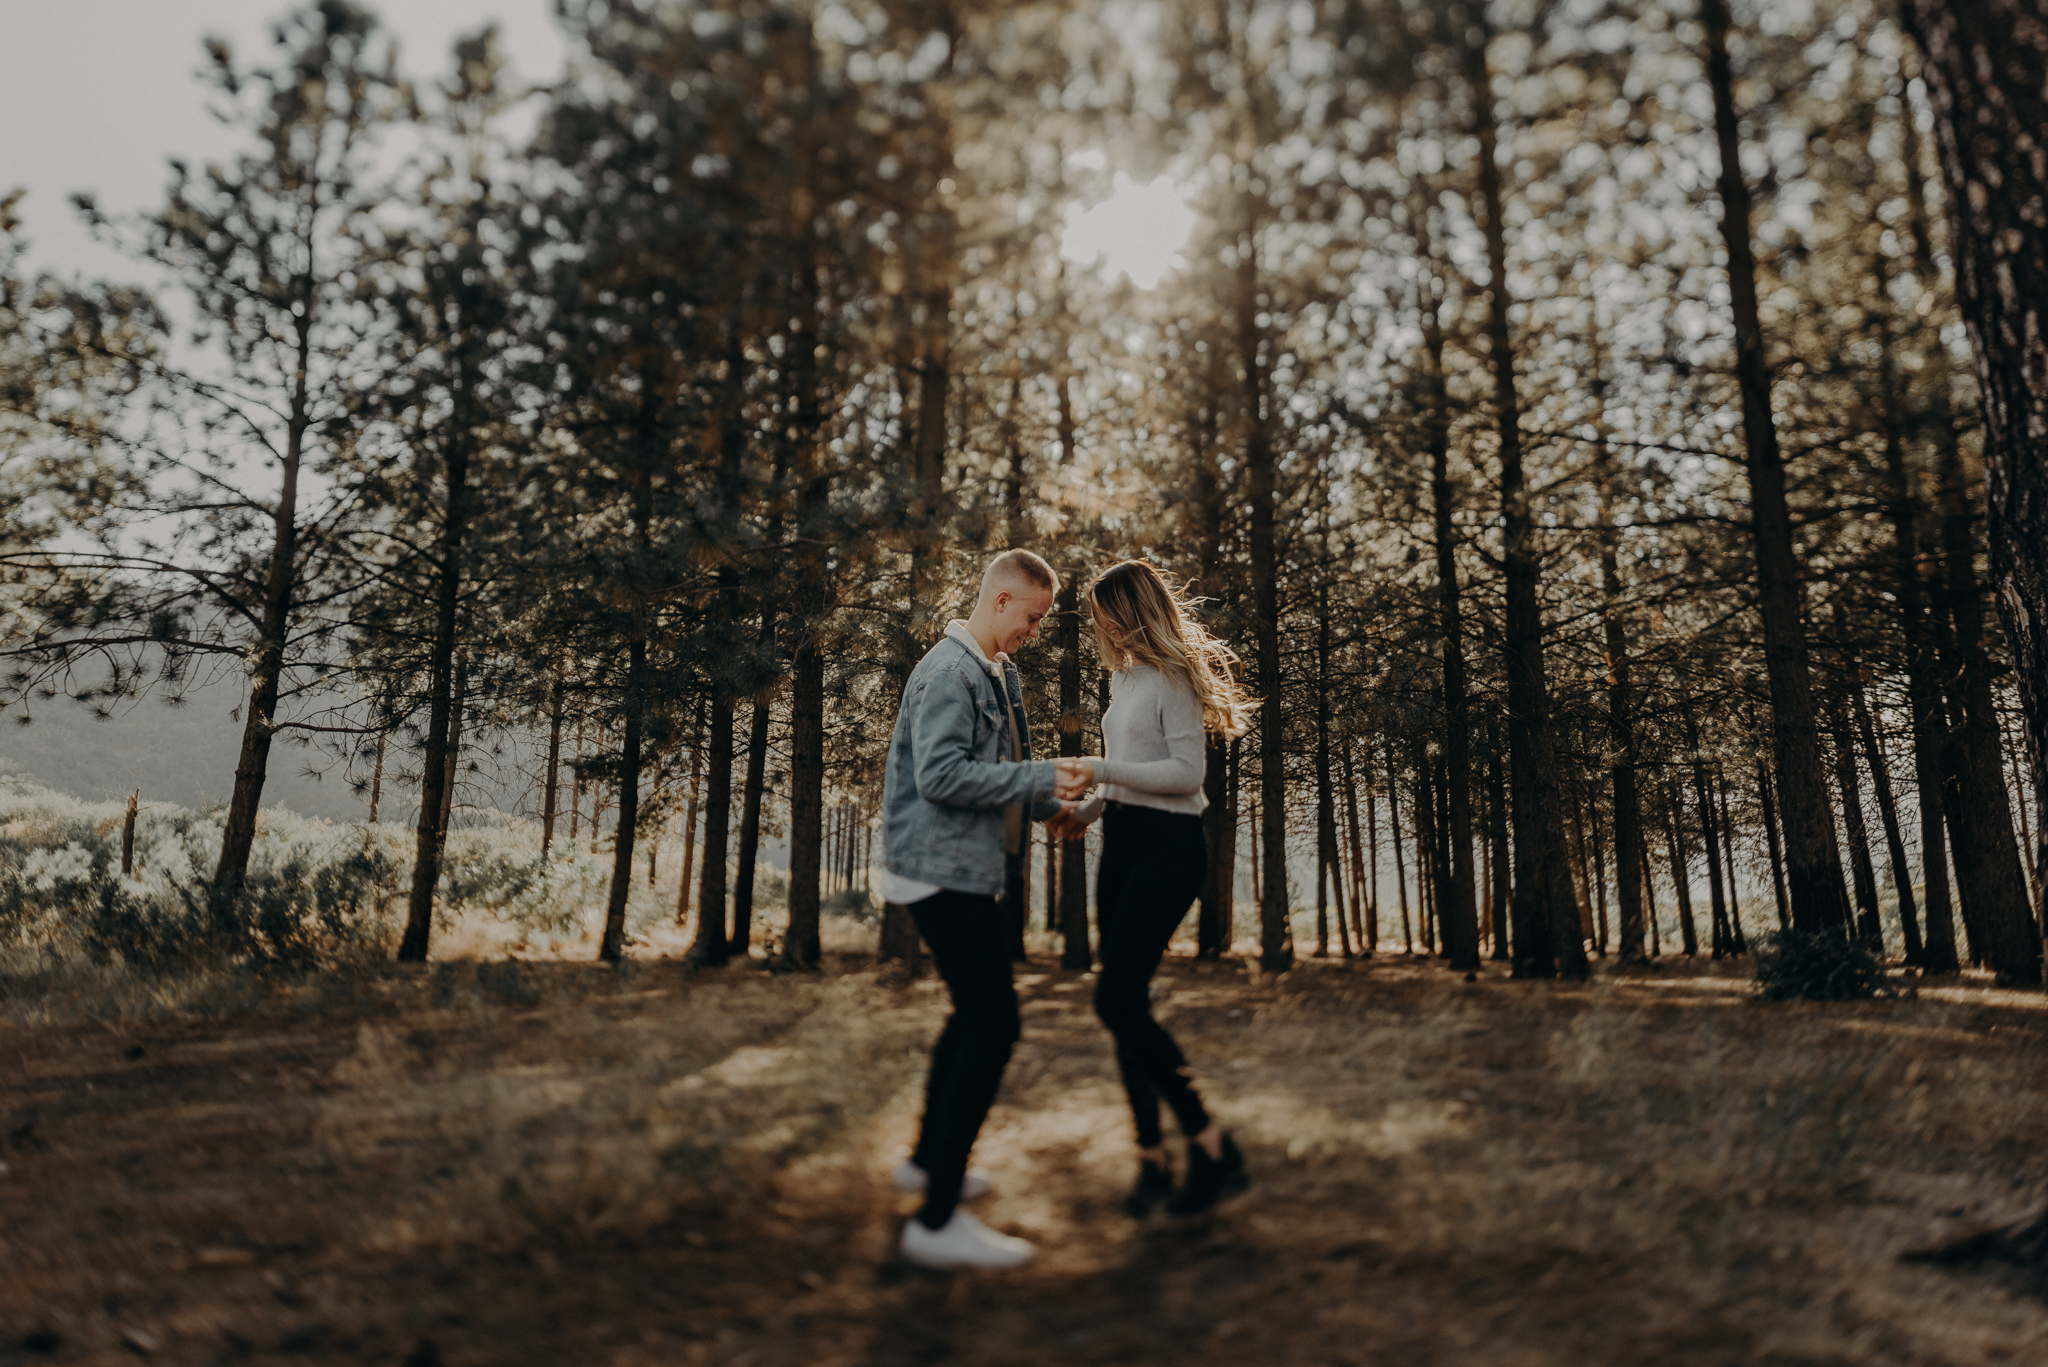 Isaiah + Taylor Photography - Los Angeles Forest Engagement, Laid-back Wedding Photographer-014.jpg